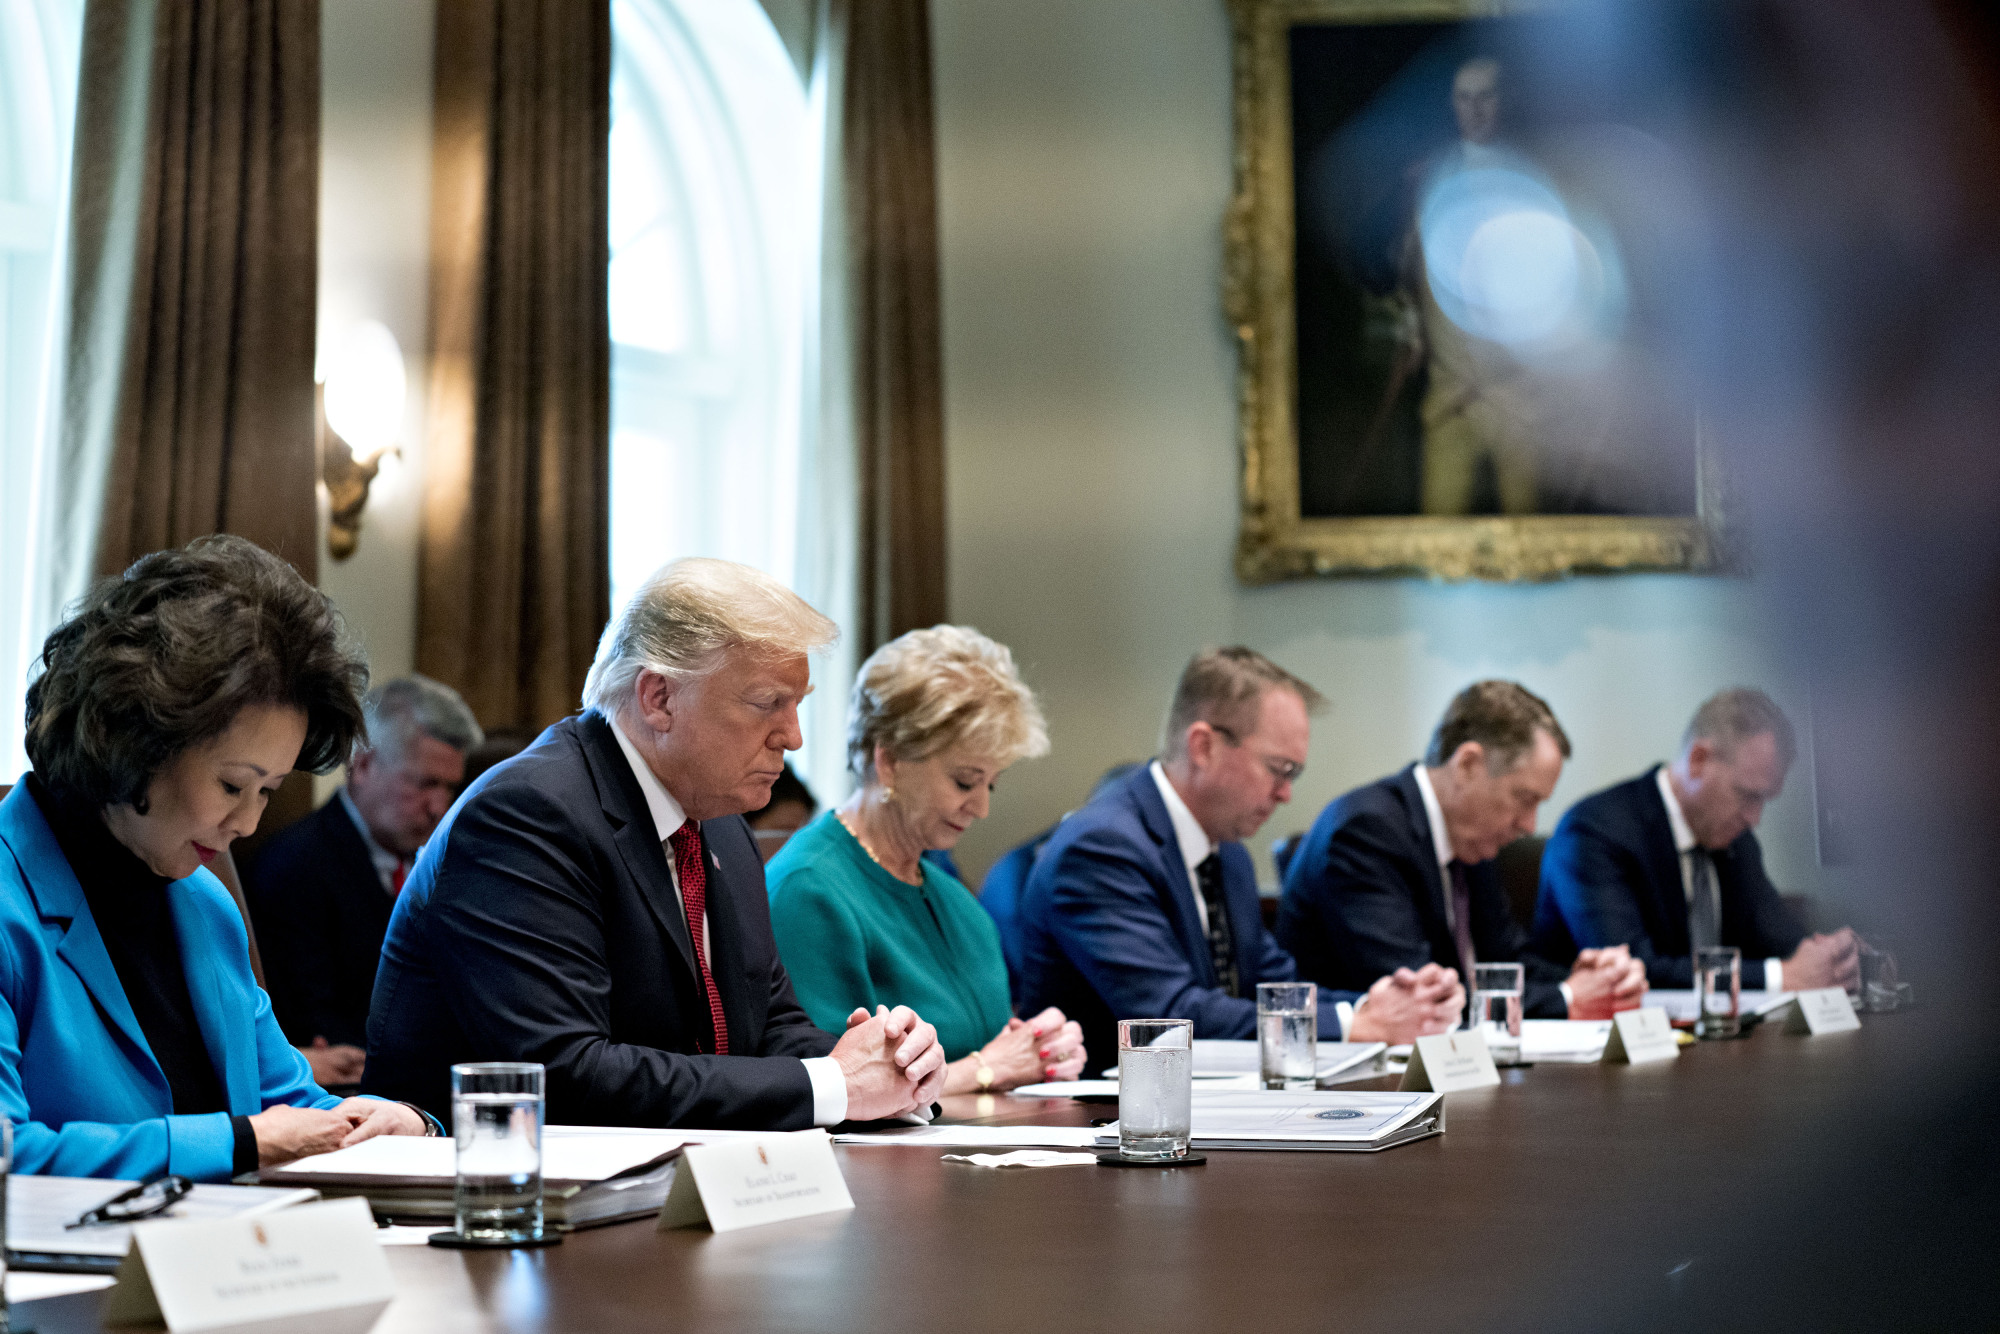 Elaine Chao, U.S. secretary of transportation (from left), U.S. President Donald Trump, Linda McMahon, administrator of the Small Business Administration (SBA), Mick Mulvaney, director of the Office of Management and Budget (OMB), and Robert Lighthizer, U.S. trade representative, listen to a prayer by Ben Carson, secretary of Housing and Urban Development (HUD) (not pictured) during a meeting in the Cabinet Room of the White House in Washington on Wednesday. | BLOOMBERG